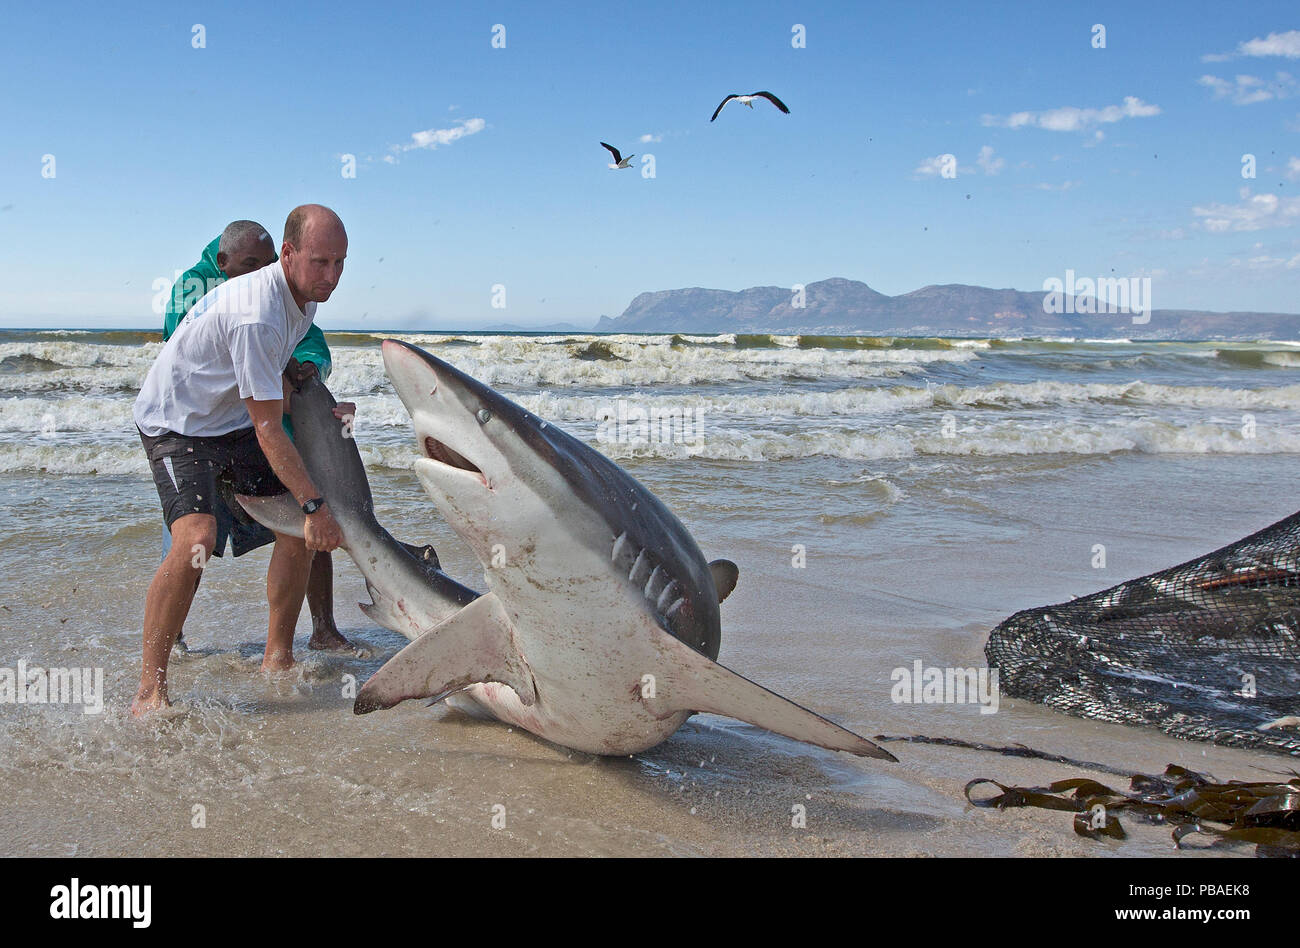 Bronze whaler shark (Carcharhinus brachyurus), caught in traditional seine net and released by fisherman, Muizenberg beach, Cape Town, South Africa, January. - Stock Image